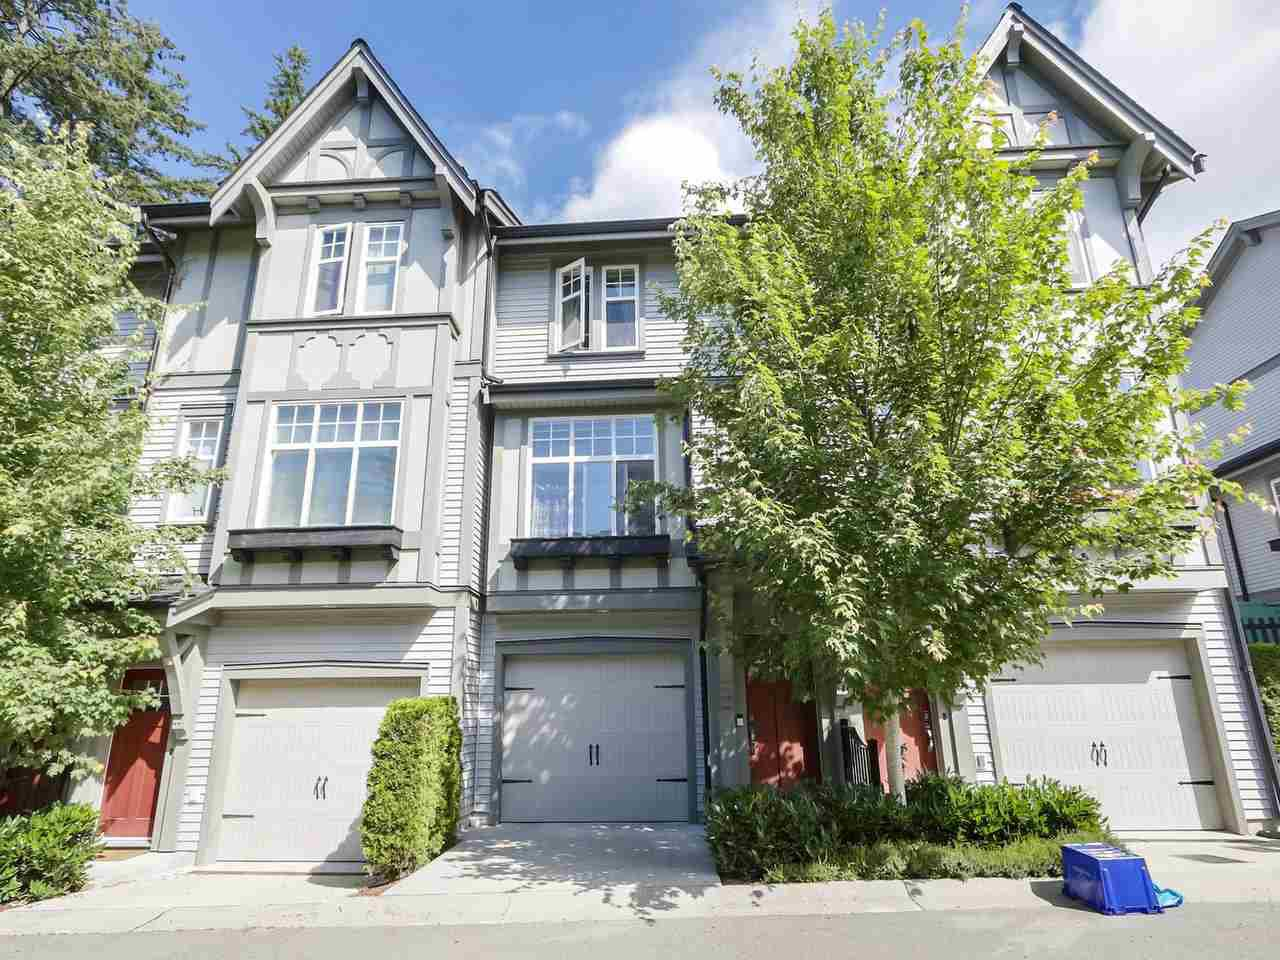 Main Photo: 48 1320 RILEY Street in Coquitlam: Burke Mountain Townhouse for sale : MLS®# R2470745